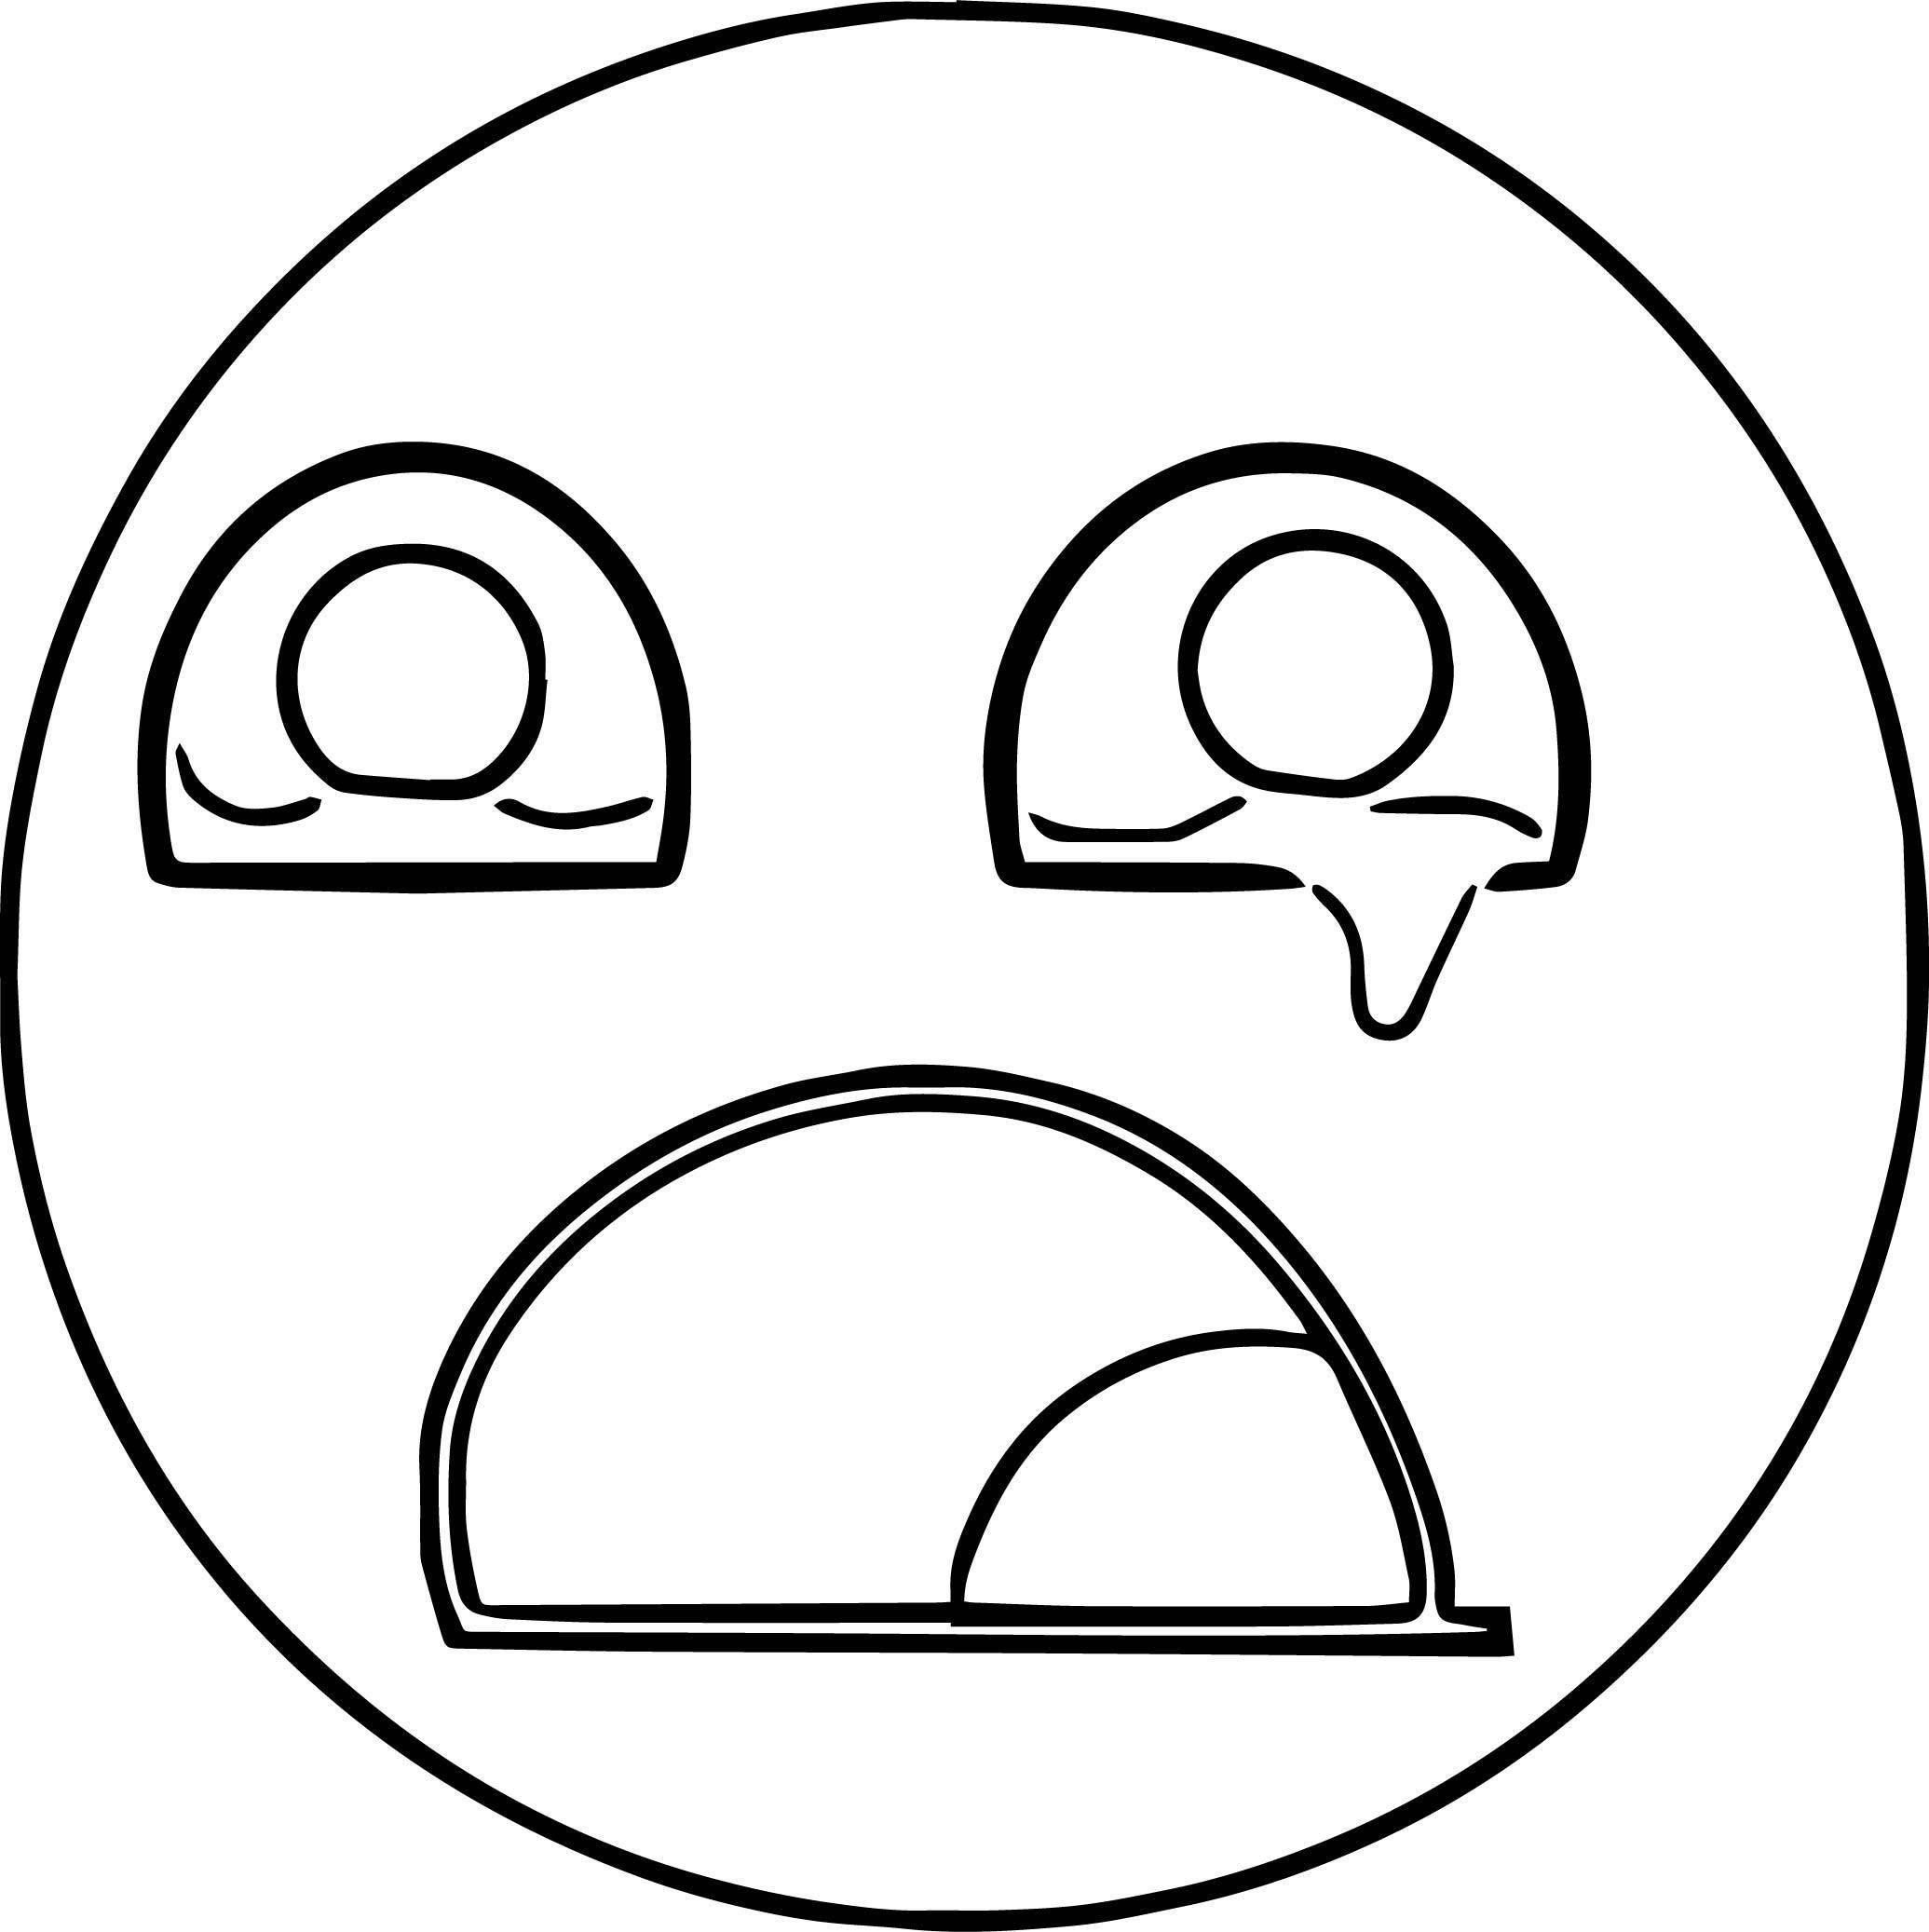 Purple Sad Face Cow Cry Emology Coloring Page